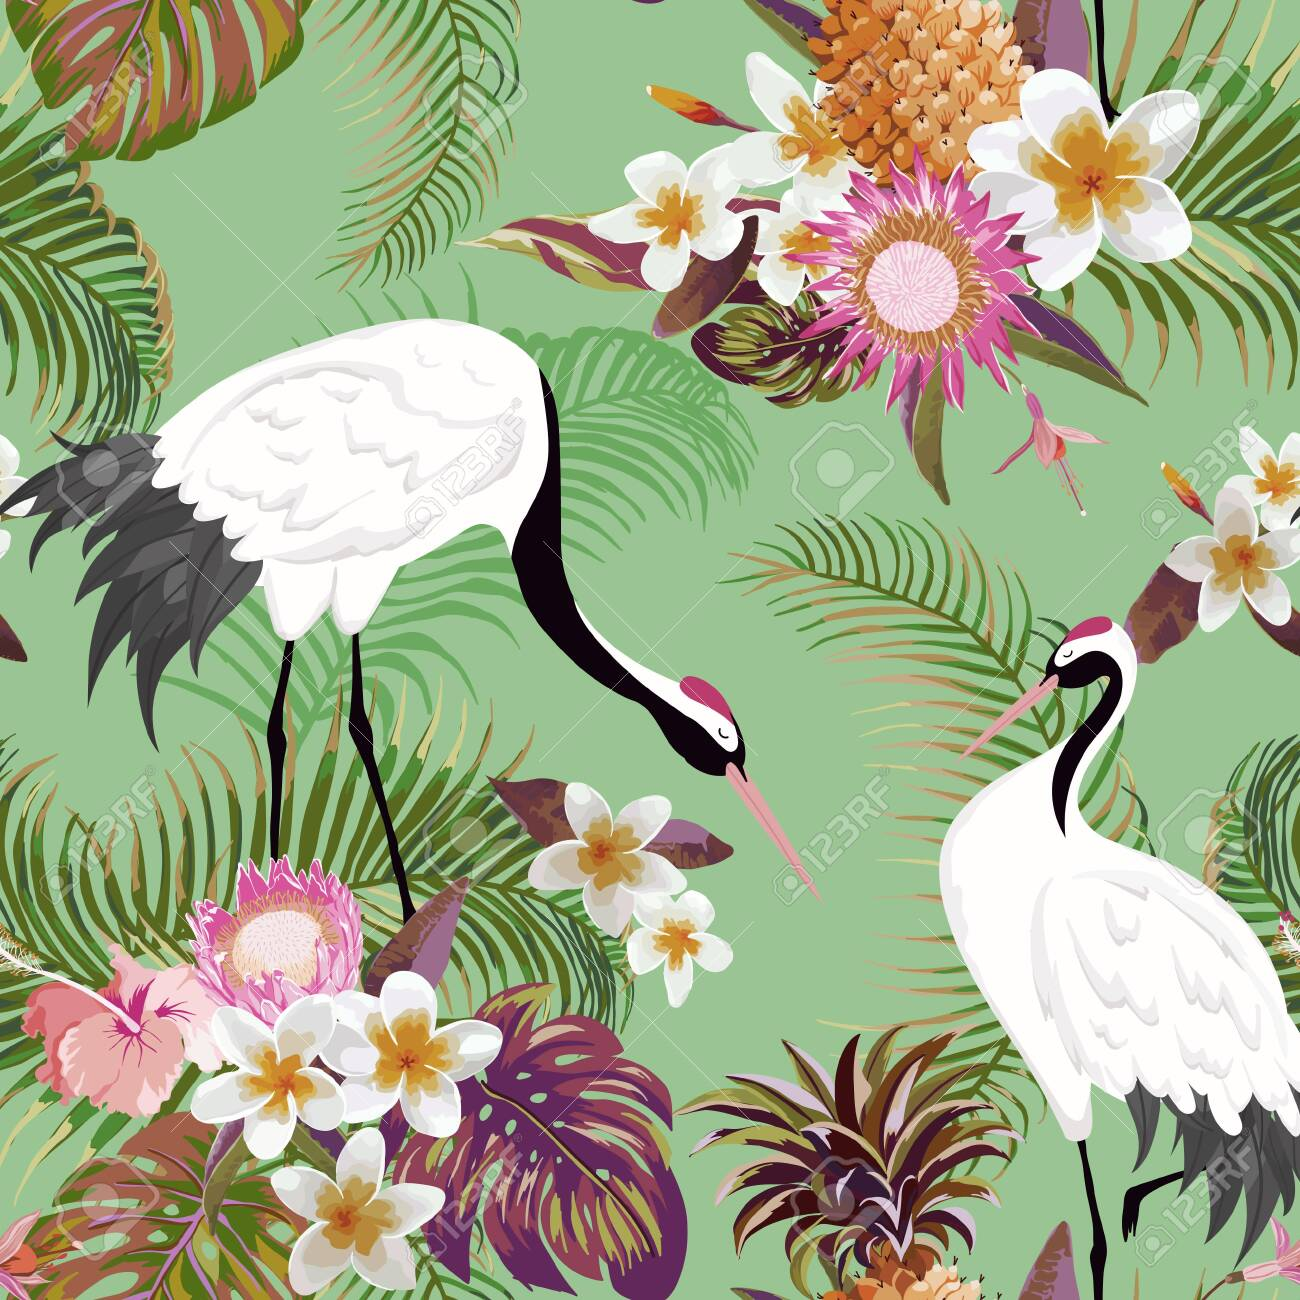 Seamless Pattern with Japanese Cranes and Tropical Flowers, Retro Floral Background, Fashion Print, Birthday Japanese Decoration Set. Vector Illustration - 129345035